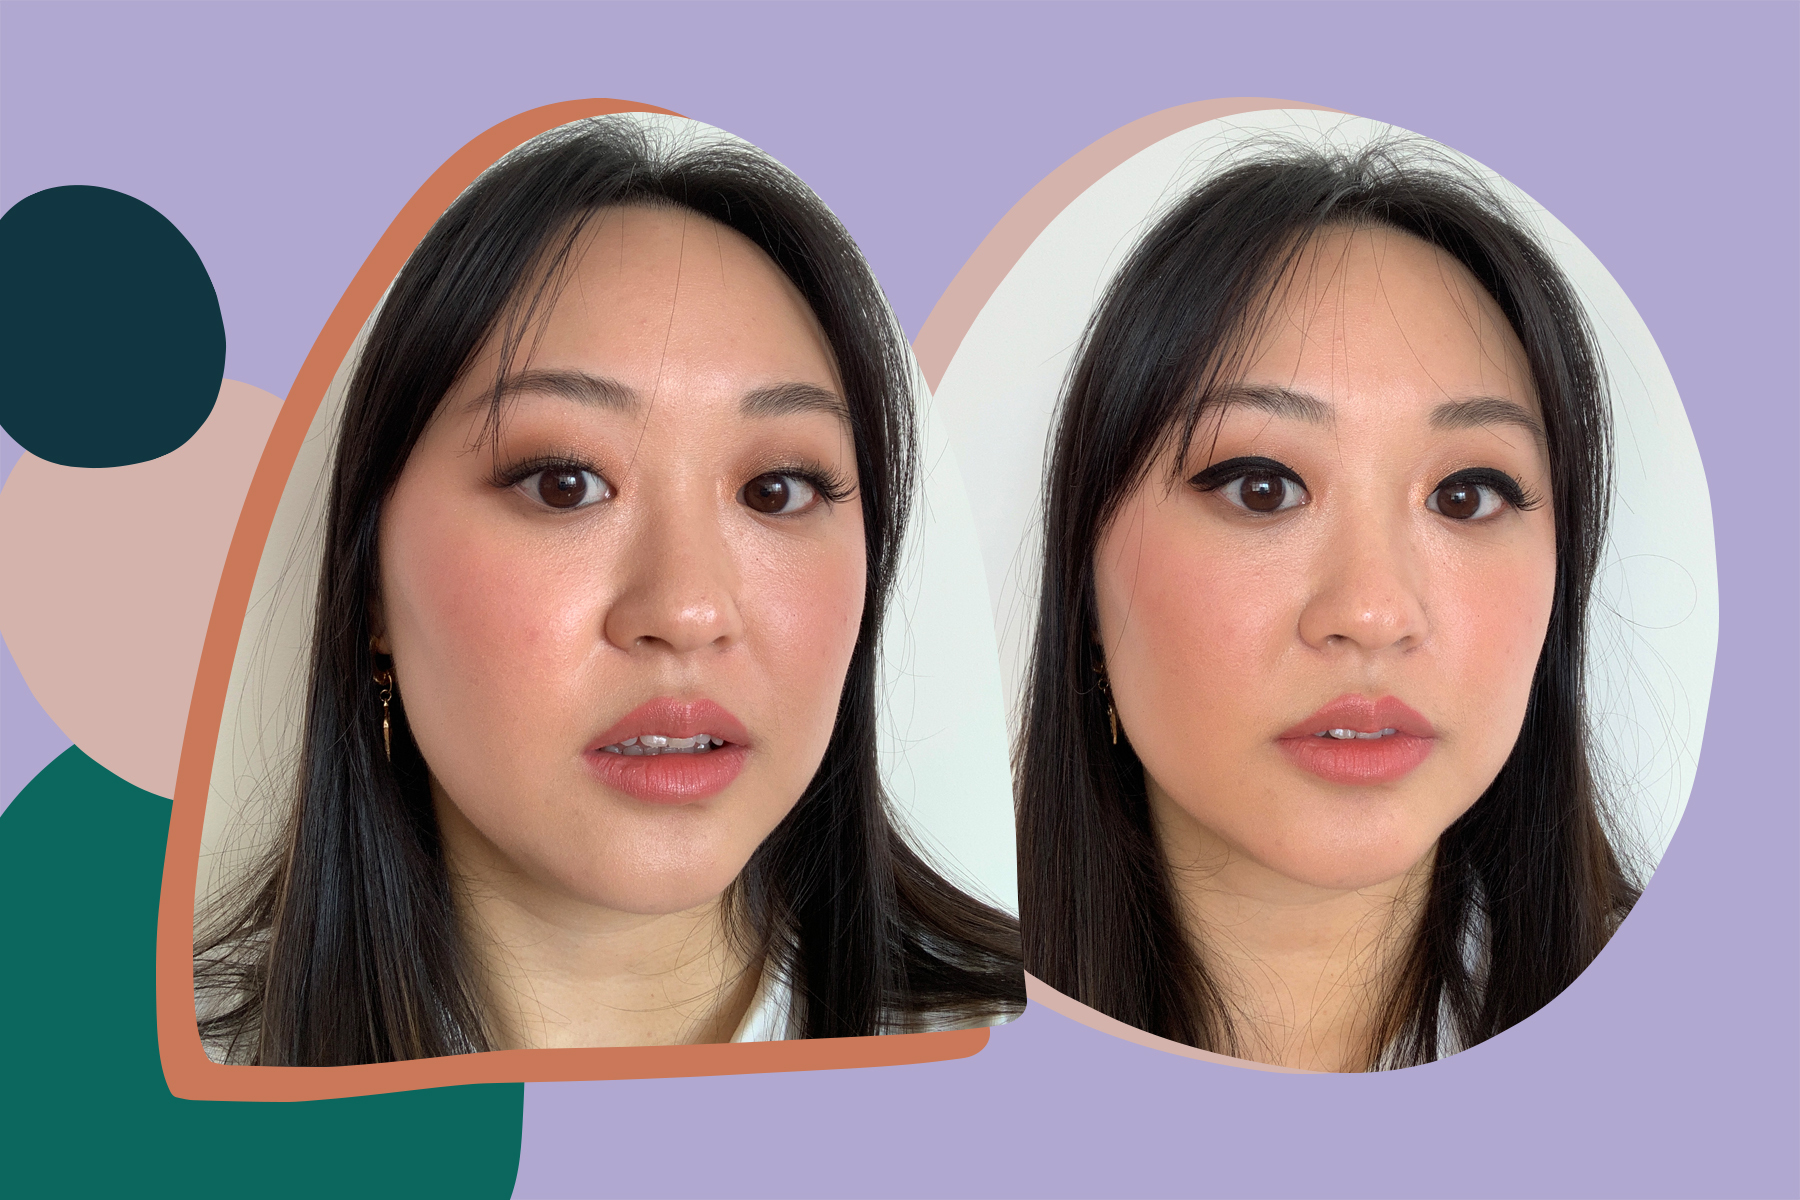 eyeshadow tips for hooded eyes monolid